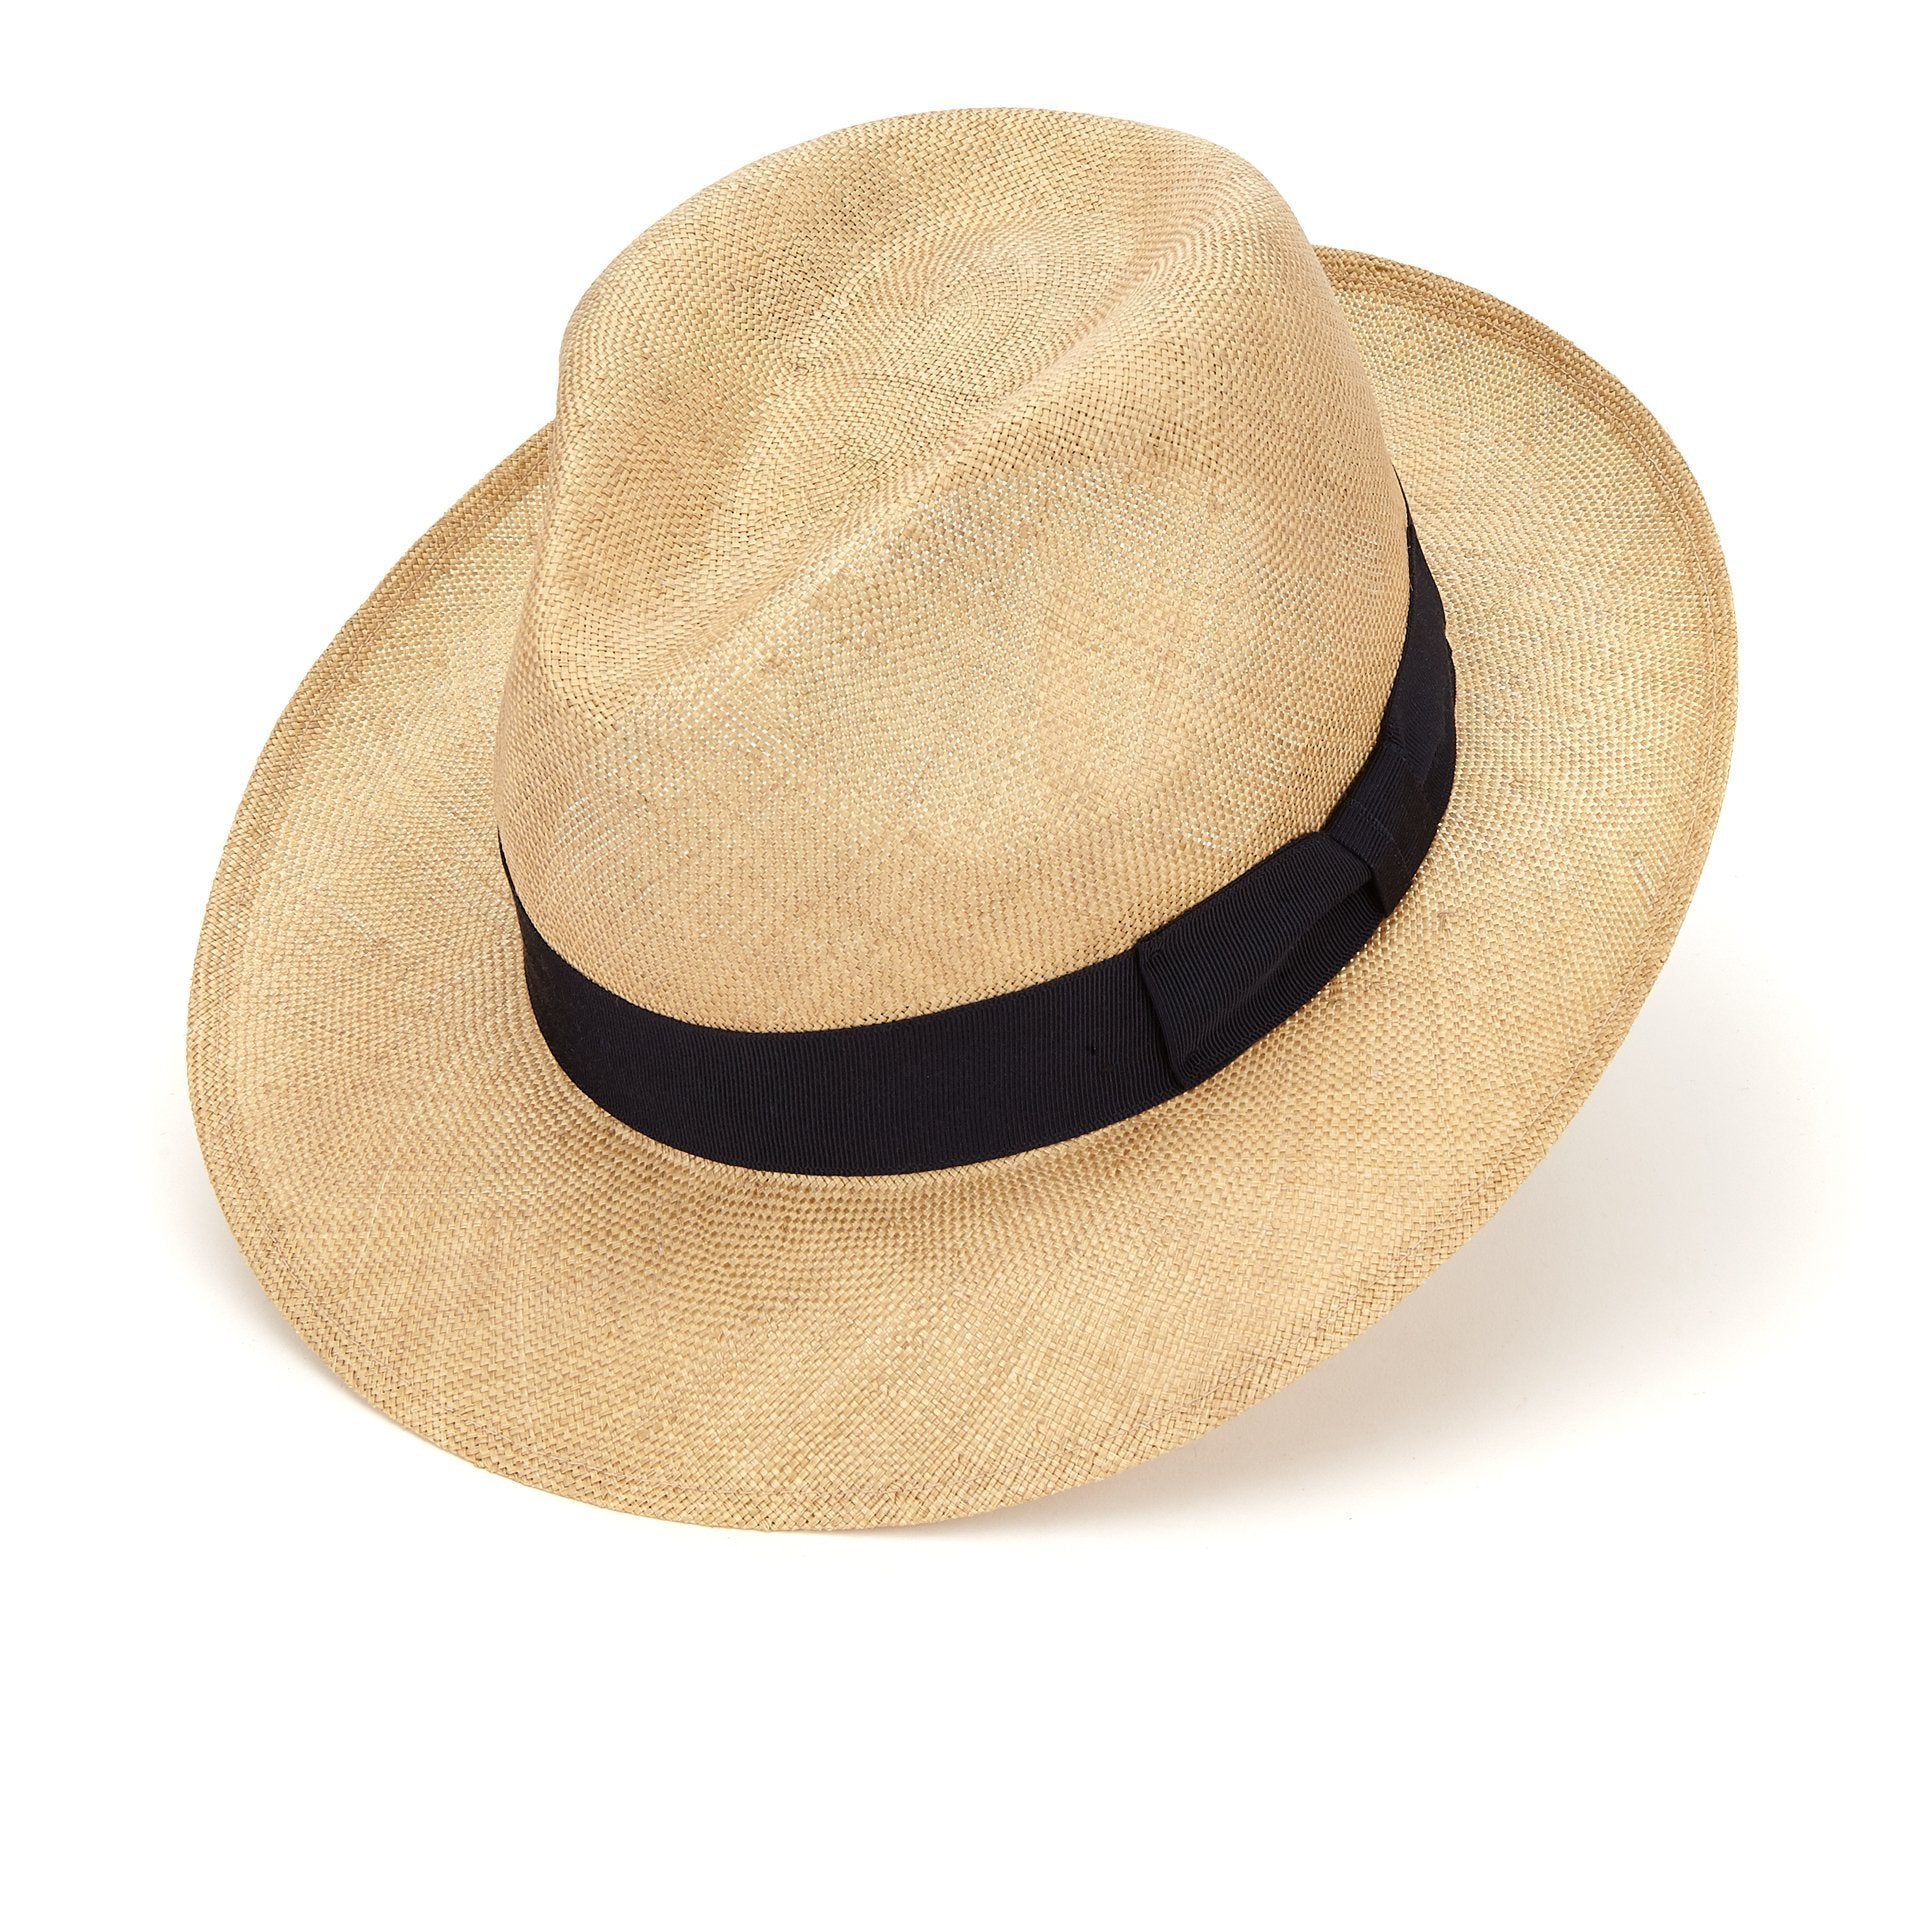 Napoli hat - Panamas, Boaters and Straw sun hats - Lock & Co. Hatters London UK